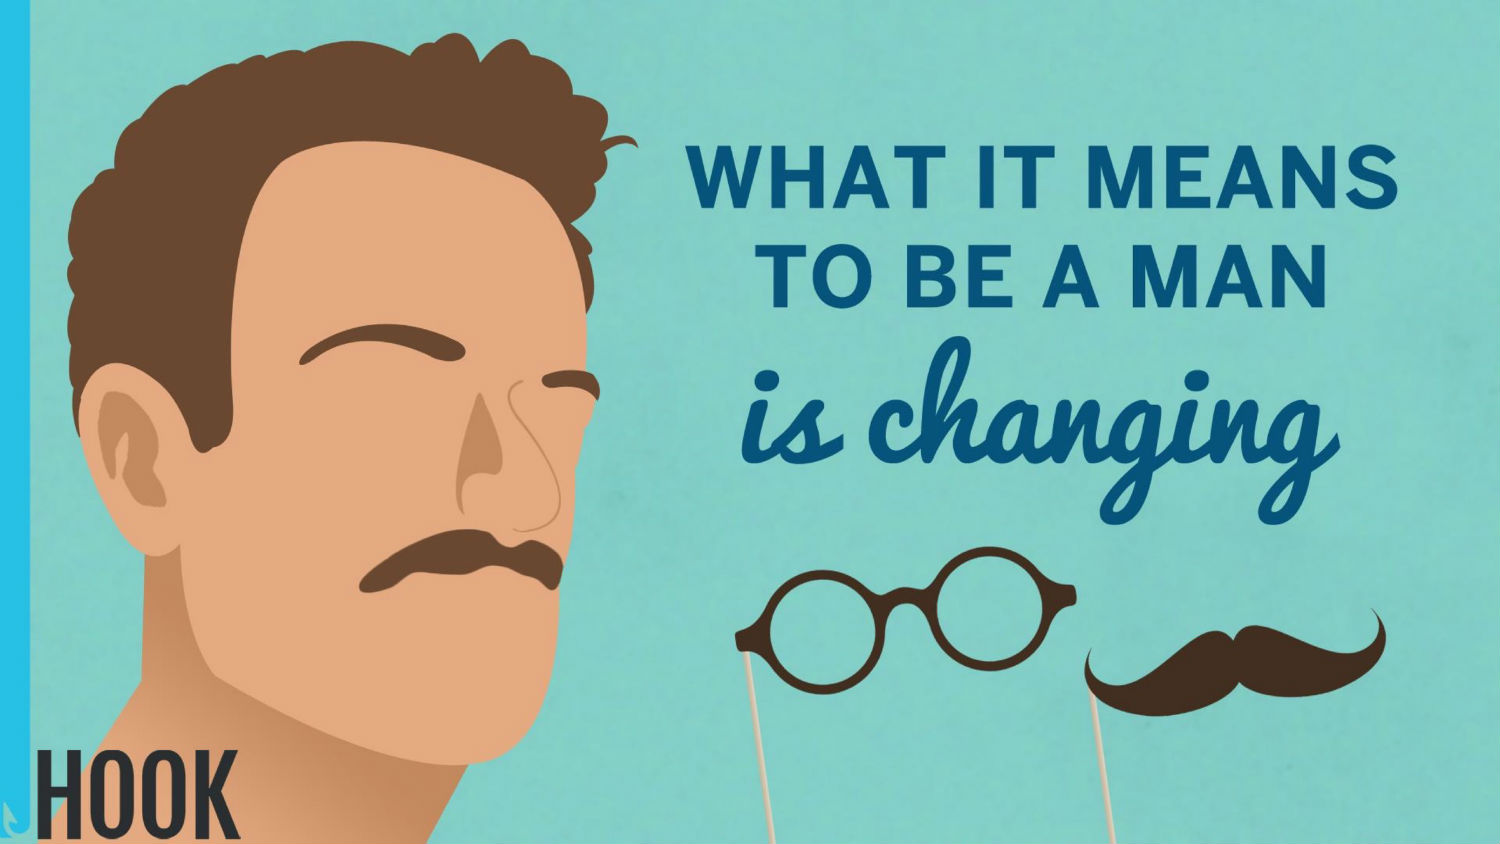 What does it mean to be a man? The changing face of modern masculinity